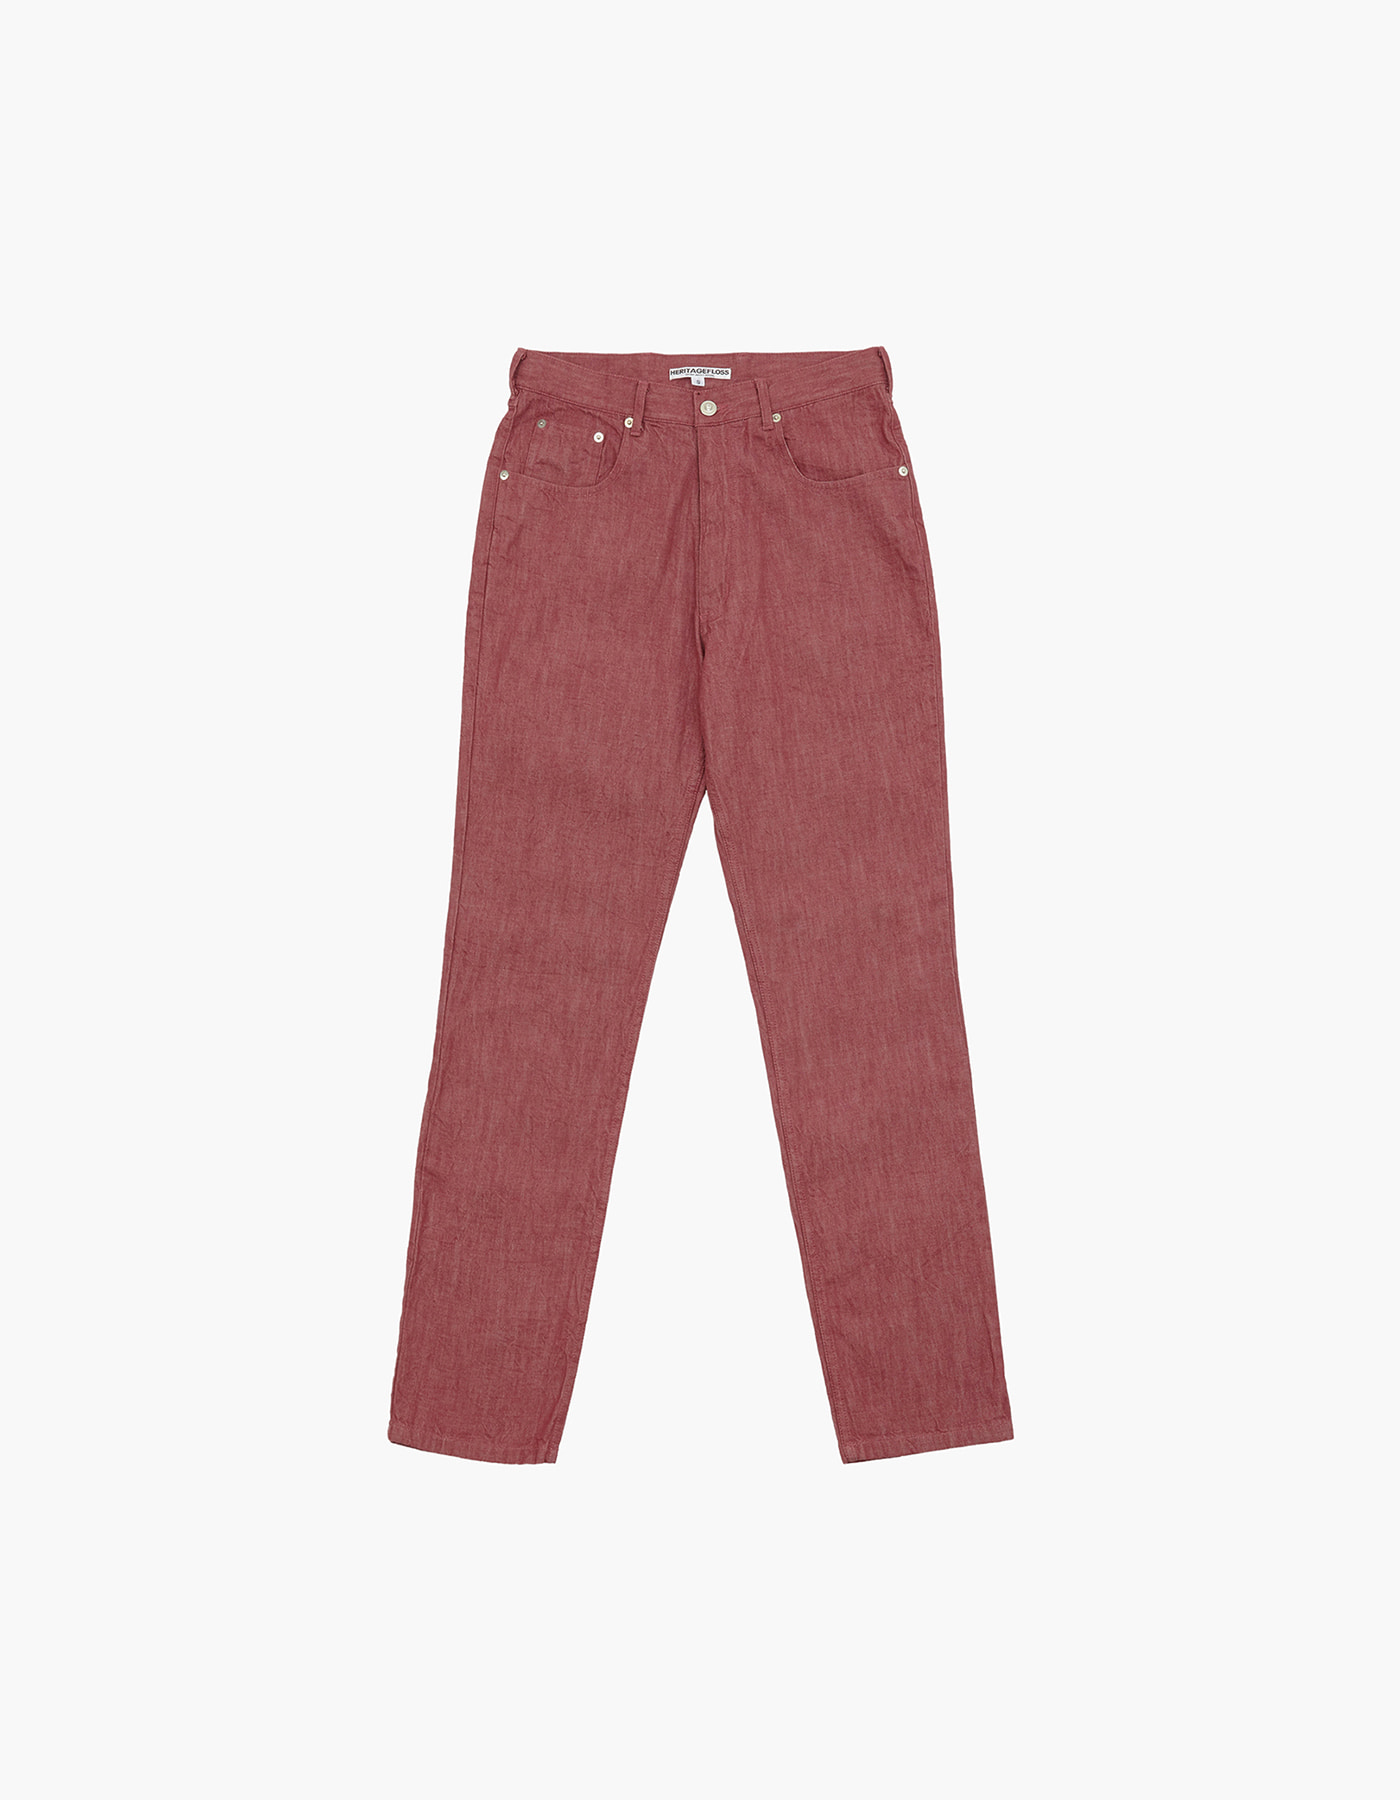 YARN DYED DENIM PANTS / RED